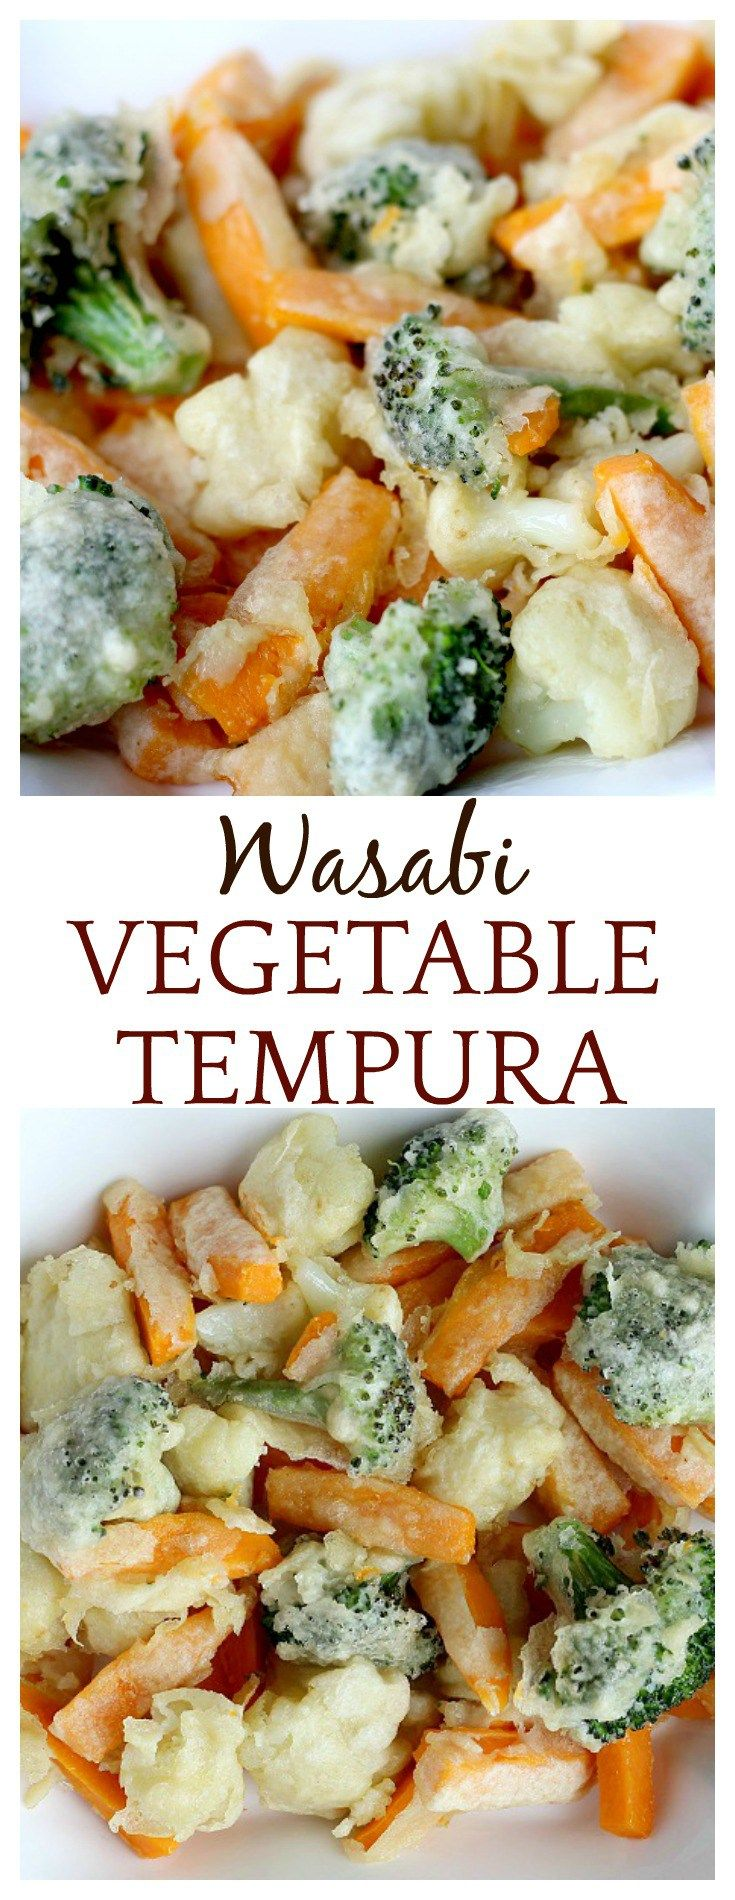 I love the addition of wasabi paste in this vegetable tempura recipe! It's the perfect Asian-inspired appetizer or side dish!